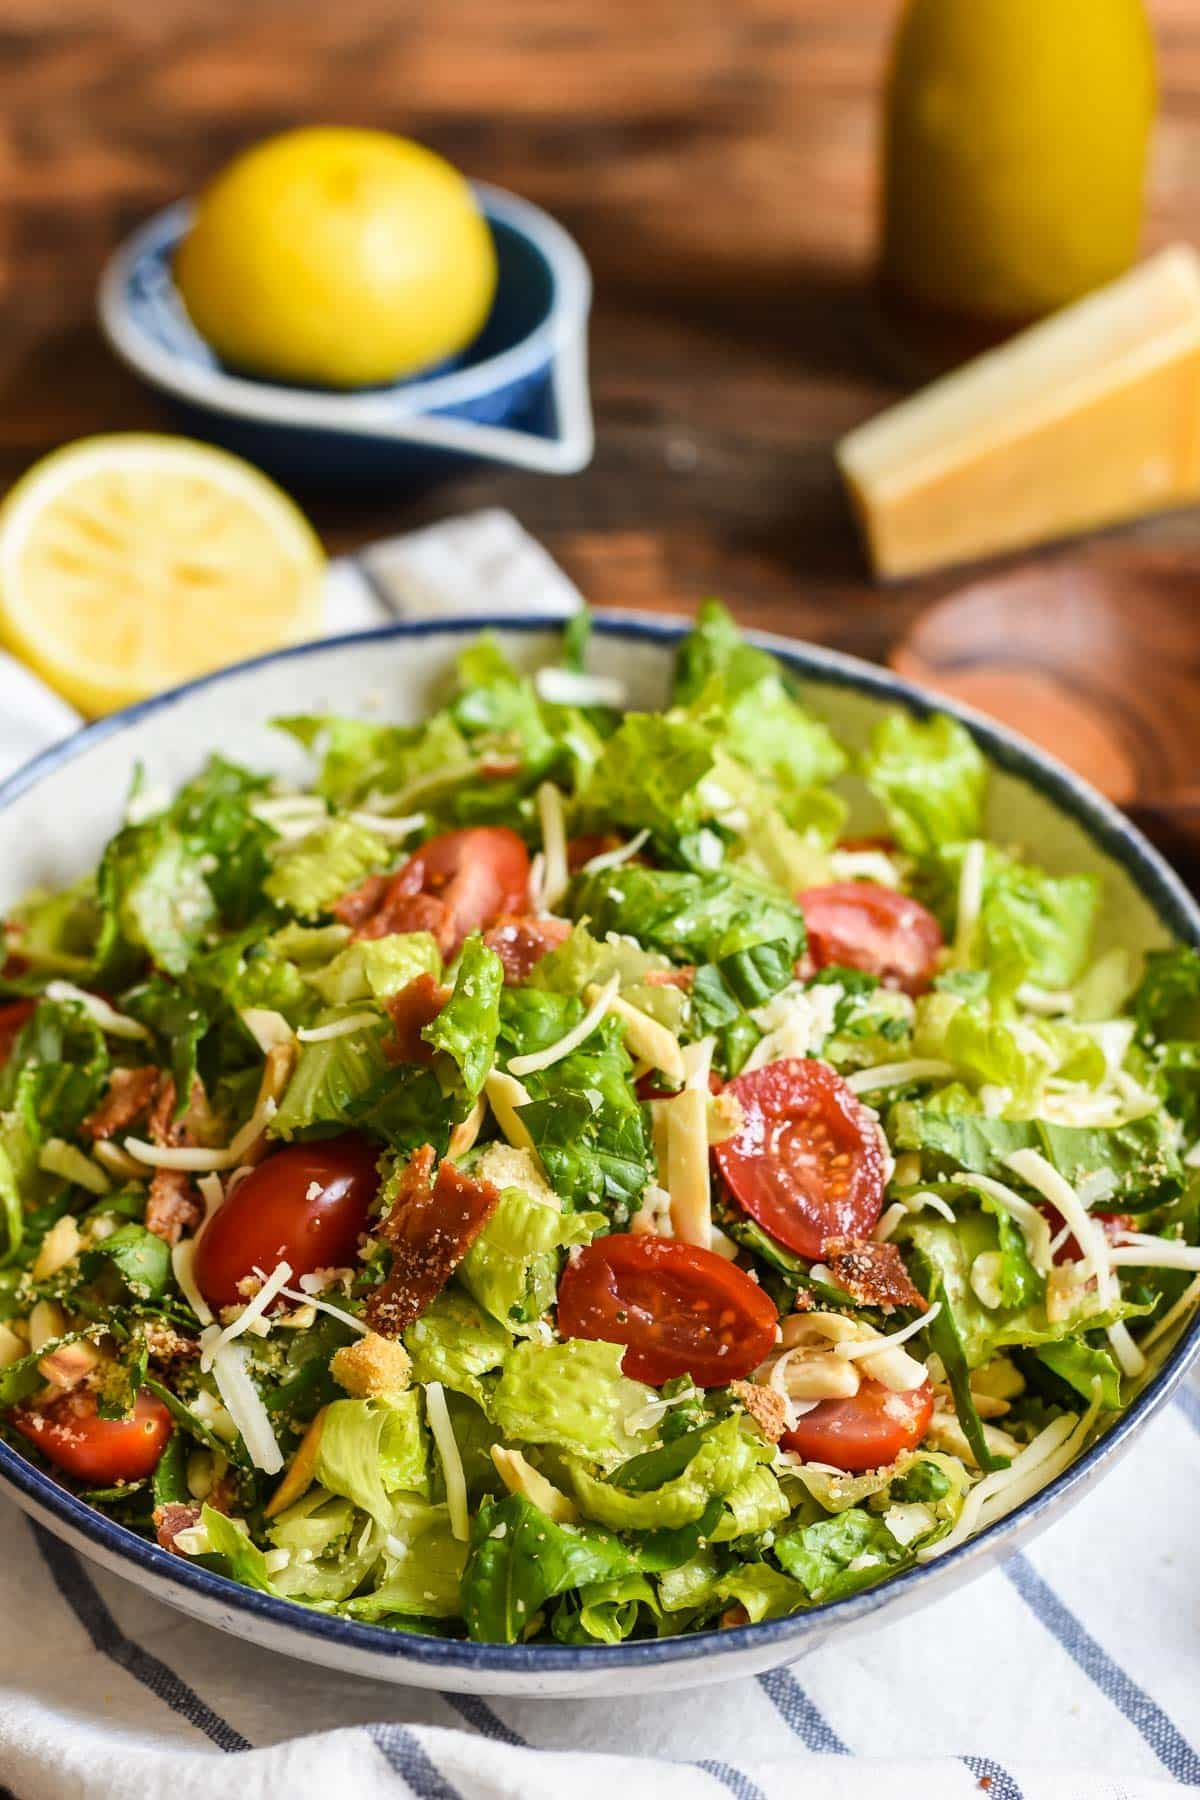 15 Recipes Perfect for Company in 2020 | Salad recipes ...